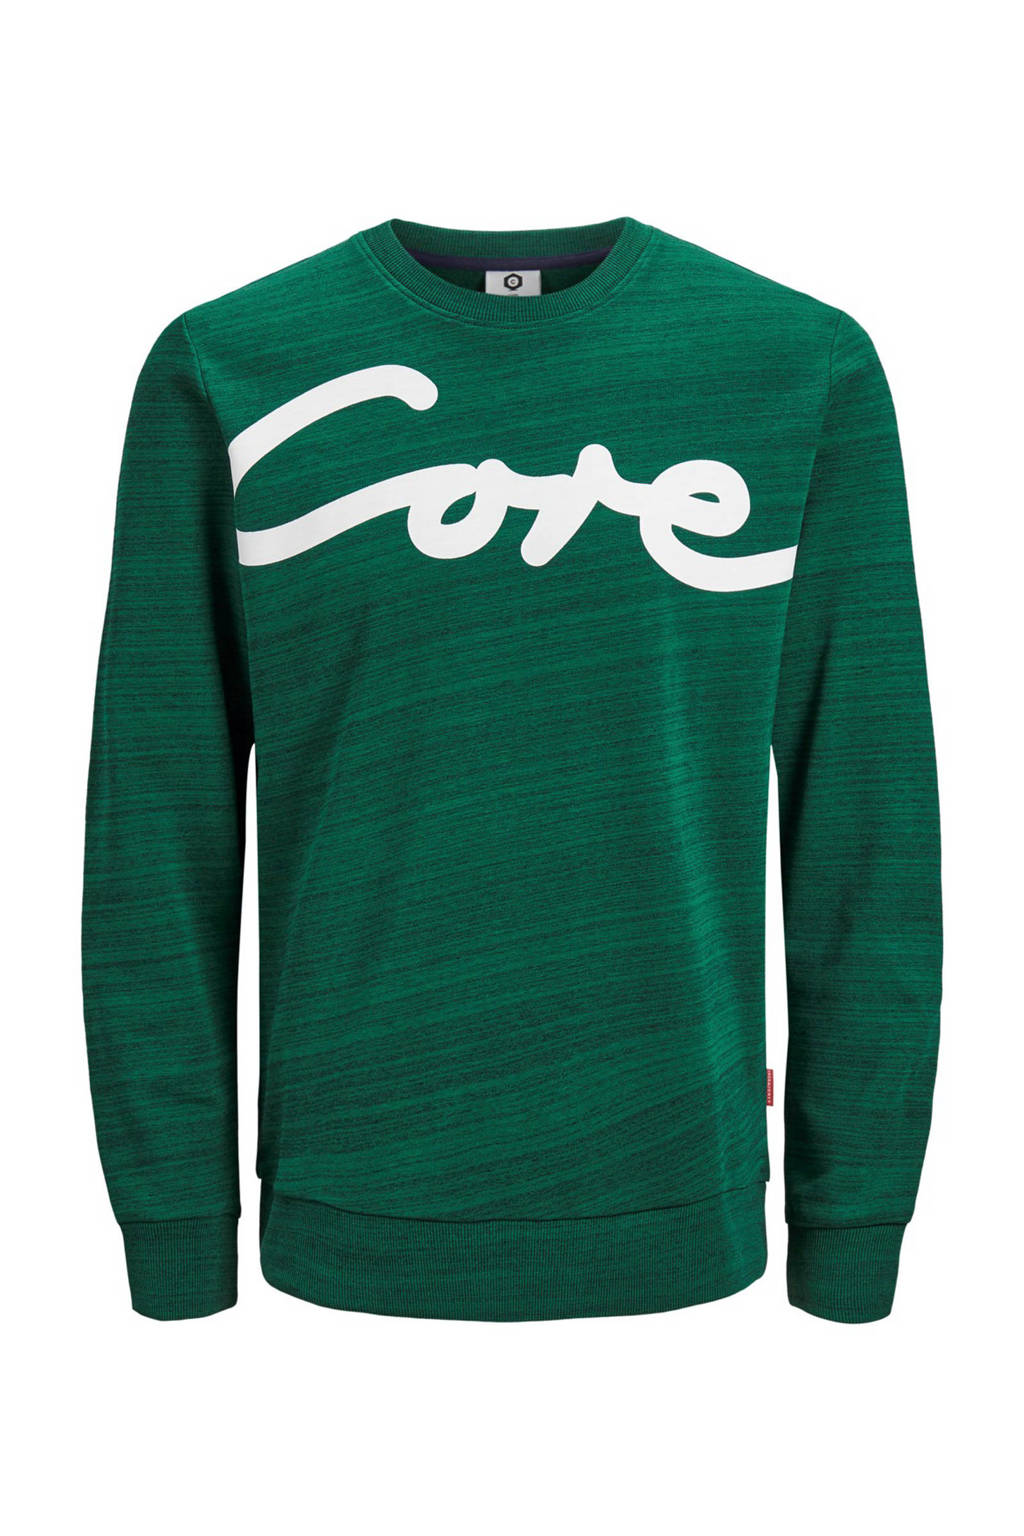 JACK & JONES CORE sweater met printopdruk, Groen